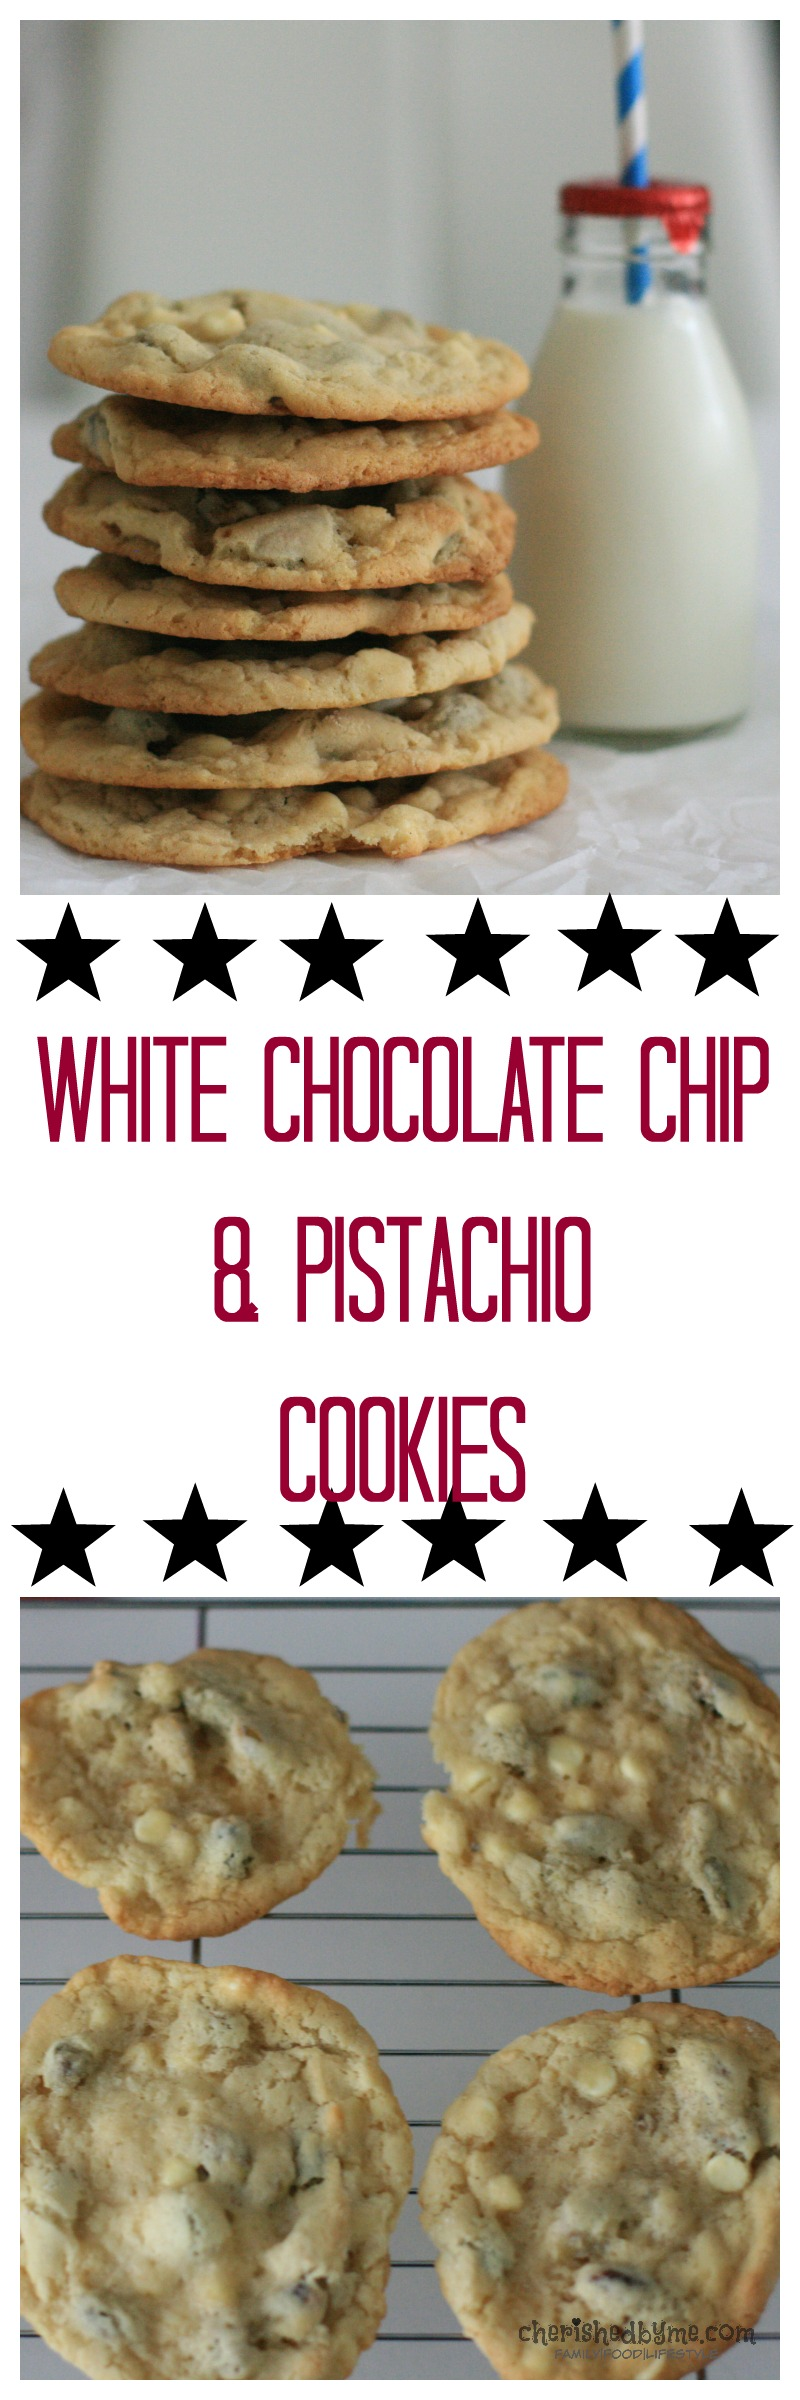 Kids Kitchen Get your kids cooking these delicious white chocolate chip pistachio cookies today- Cherished By Me